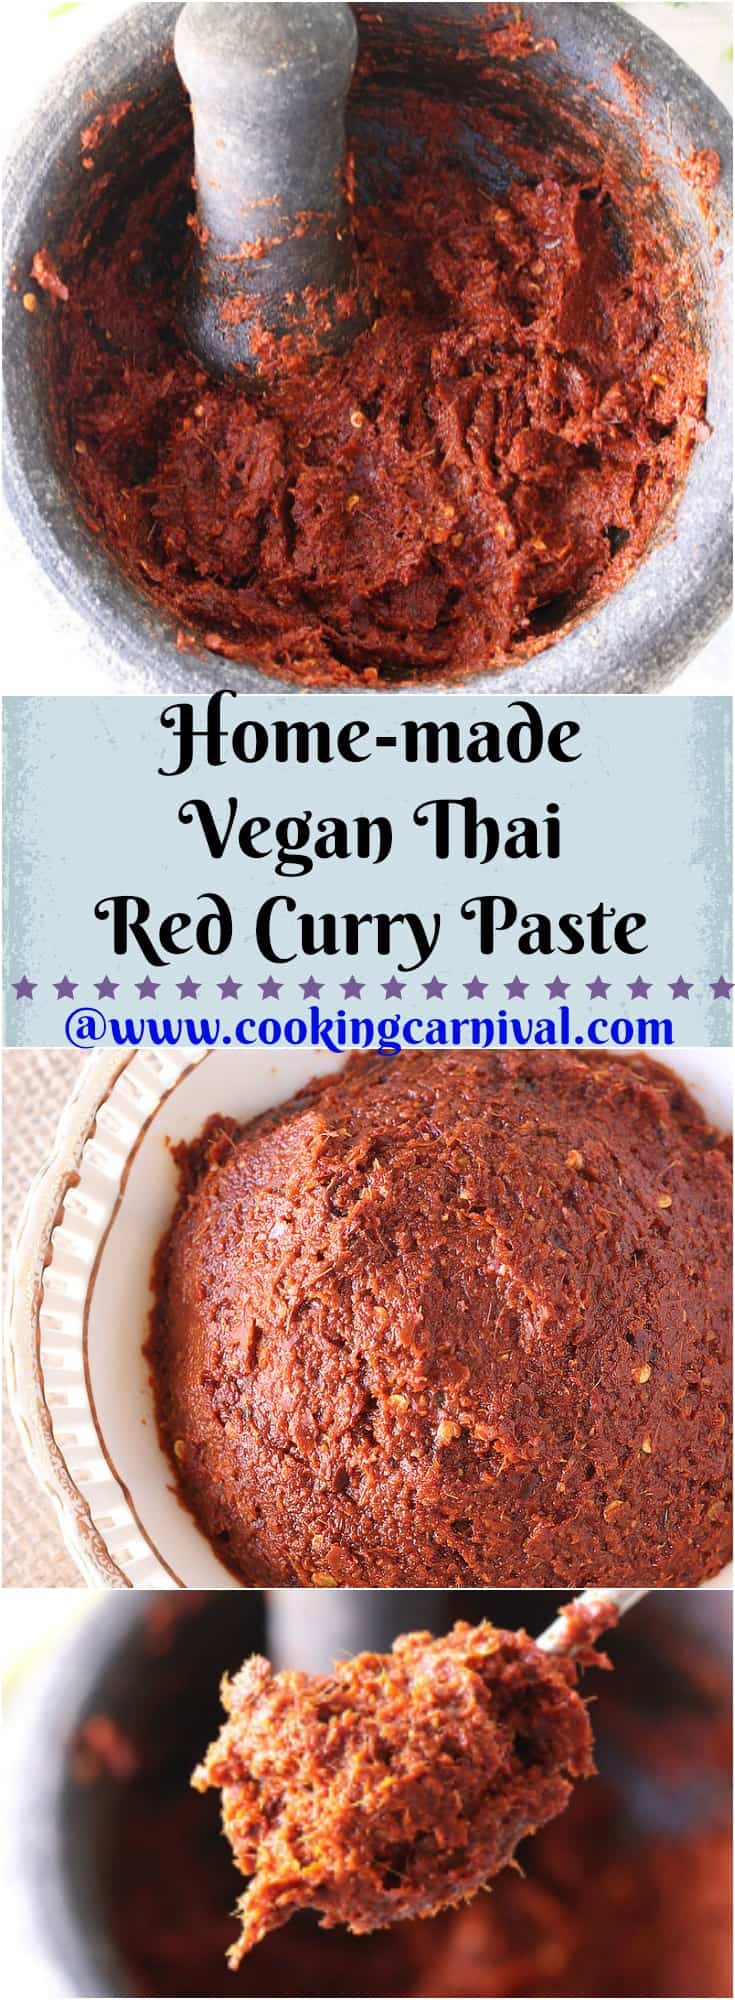 Homemade Thai Red Curry Paste